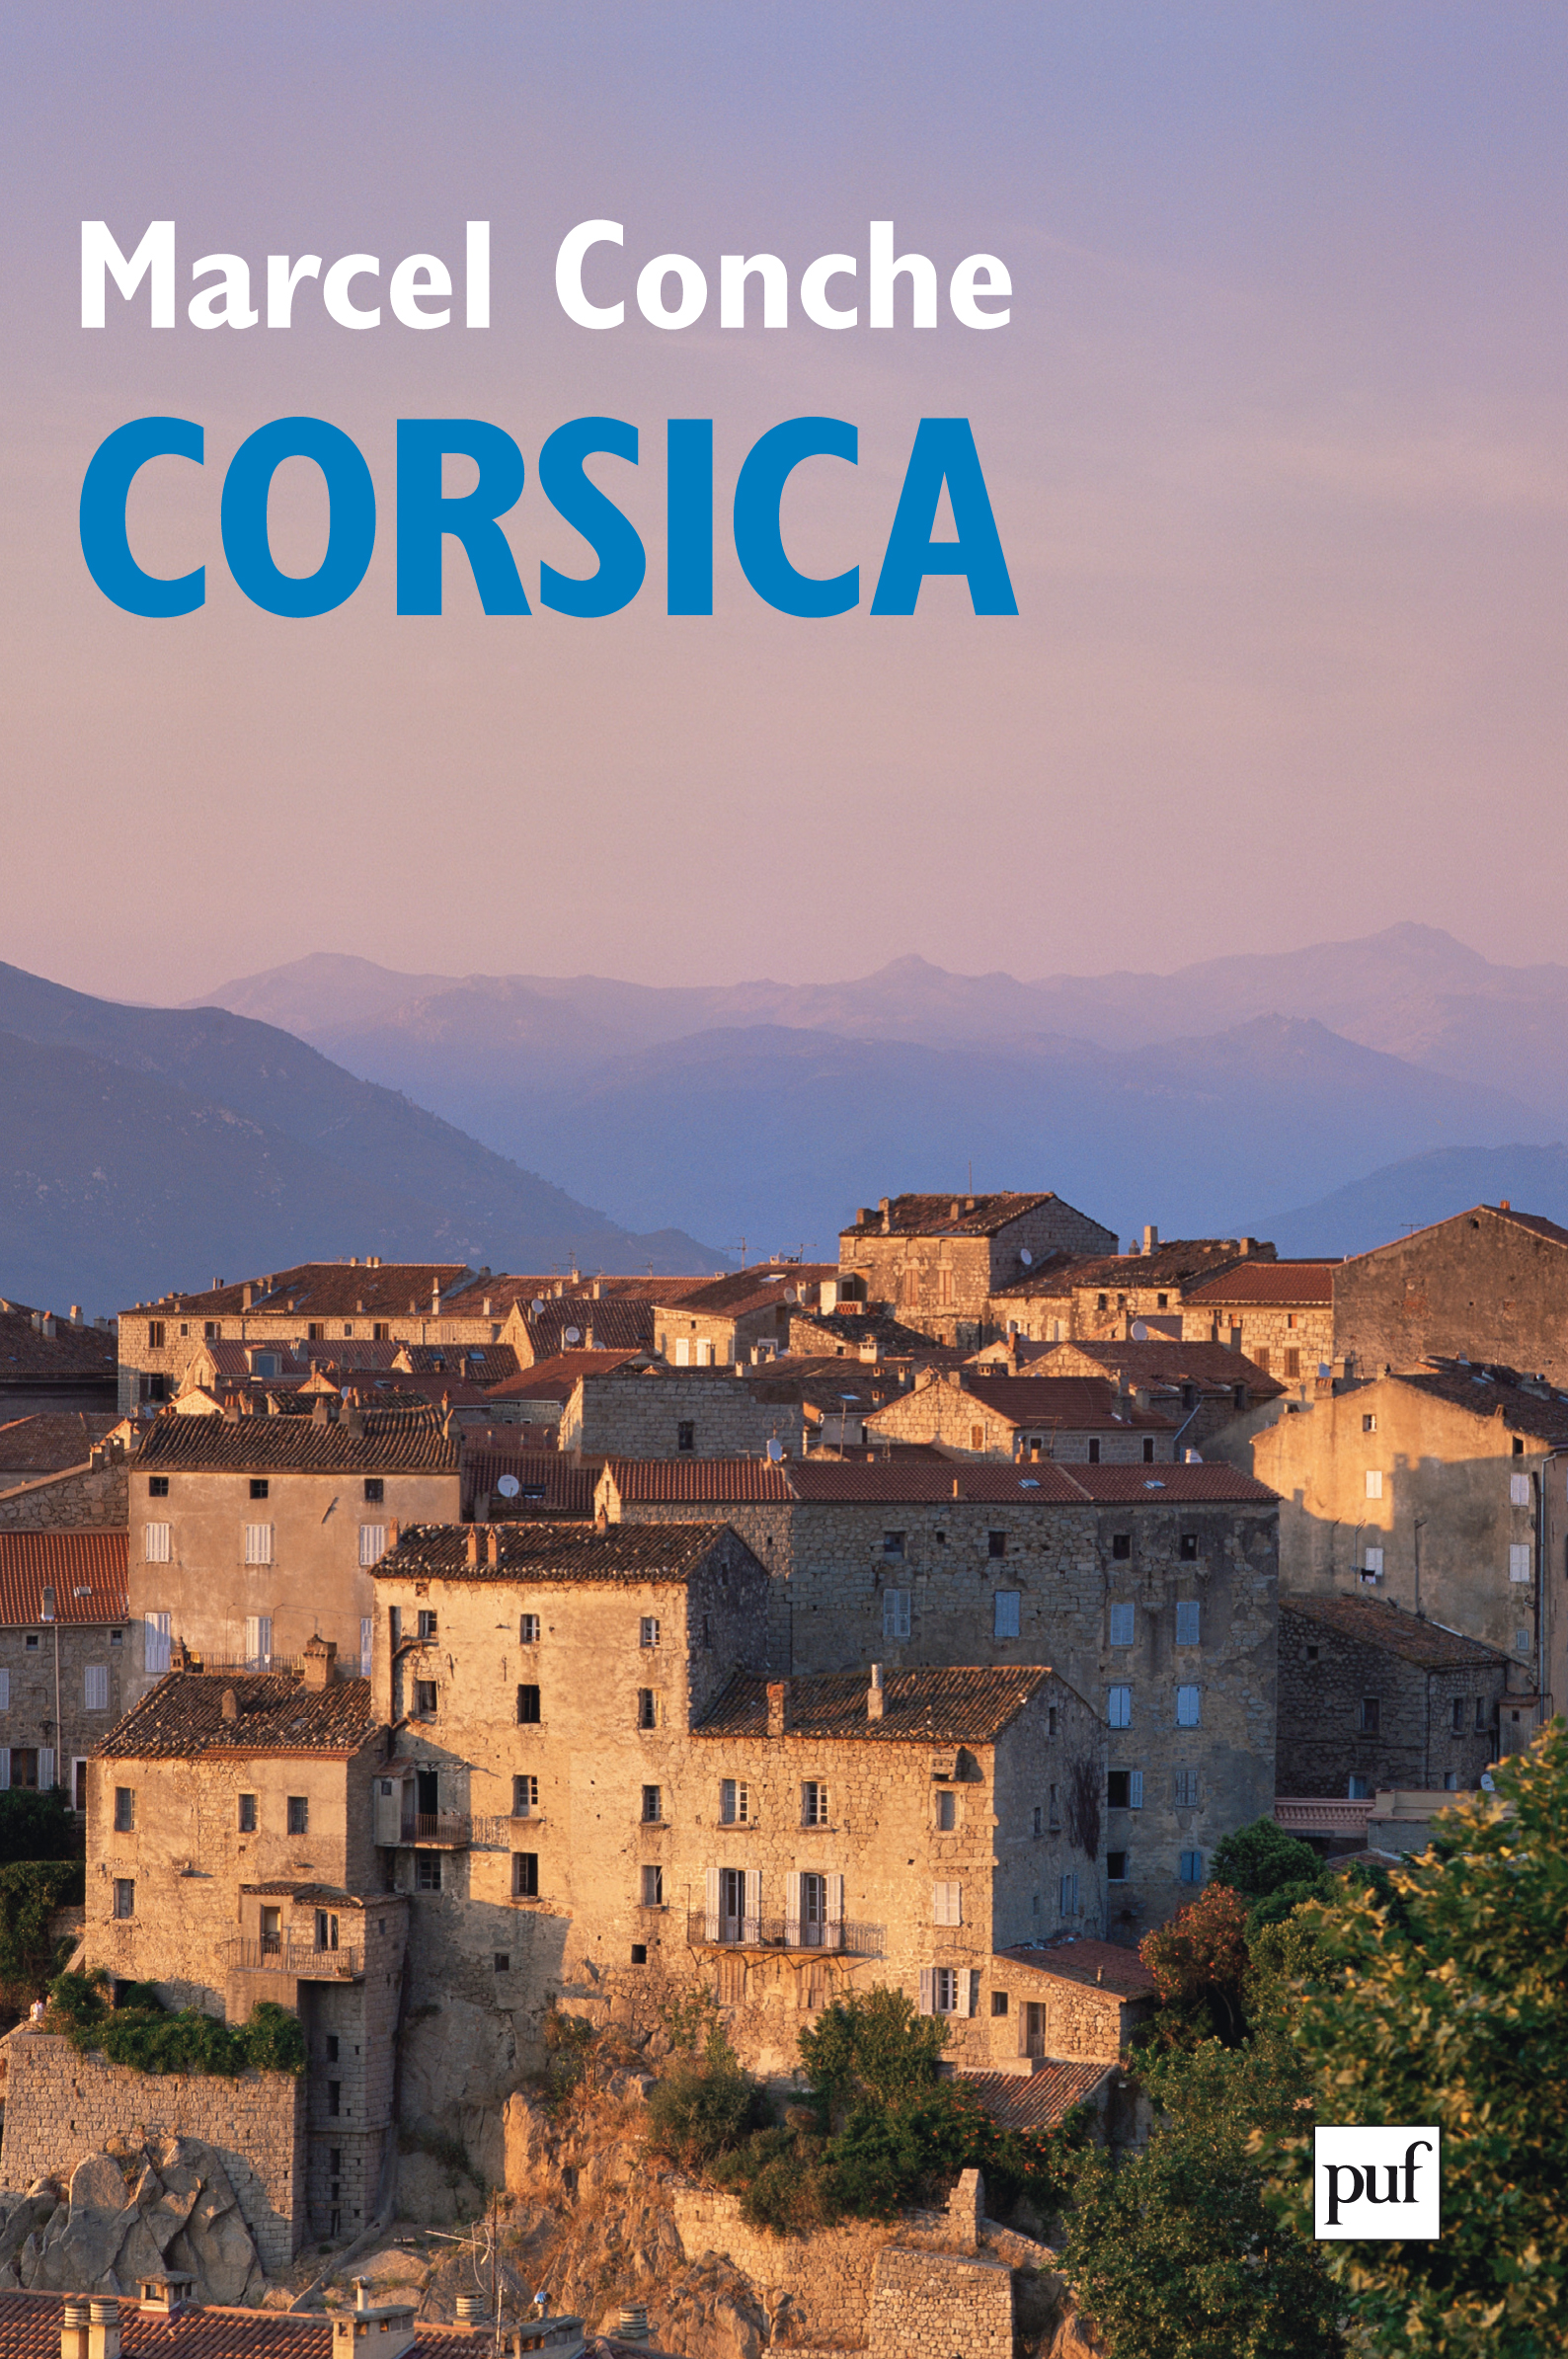 Corsica. Journal étrange V De Marcel Conche - Presses Universitaires de France